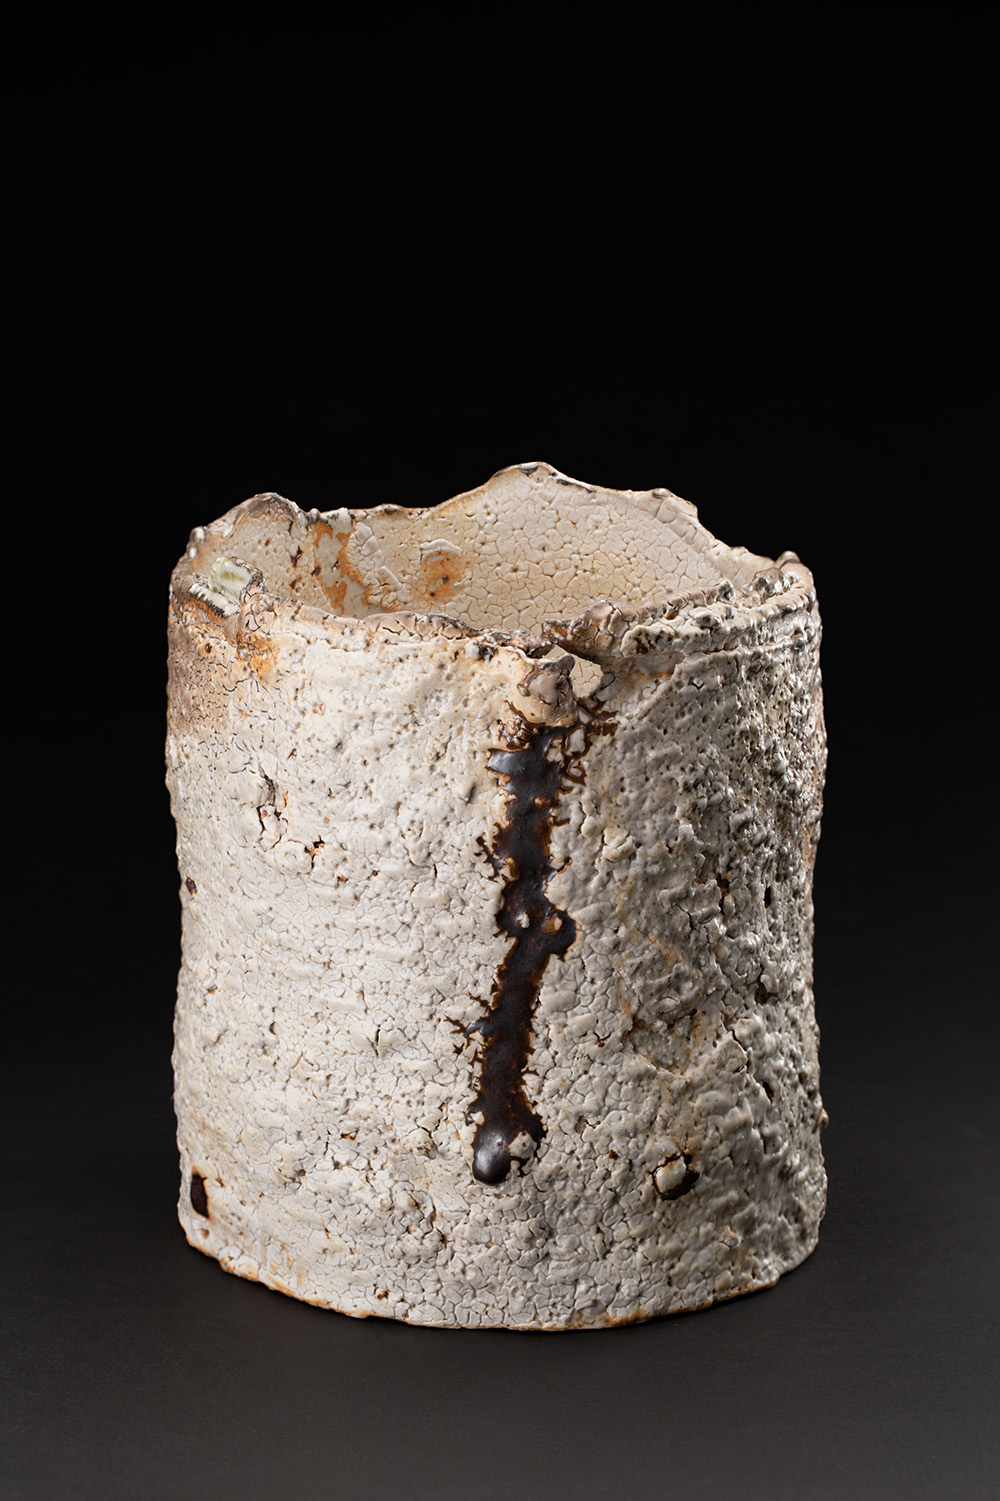 Sandy Lockwood  Subduction Series  , 2016-2019 Stoneware and inclusions 7 x 7 x 6.5 inches 17.8 x 17.8 x 16.5 cm SaL 24